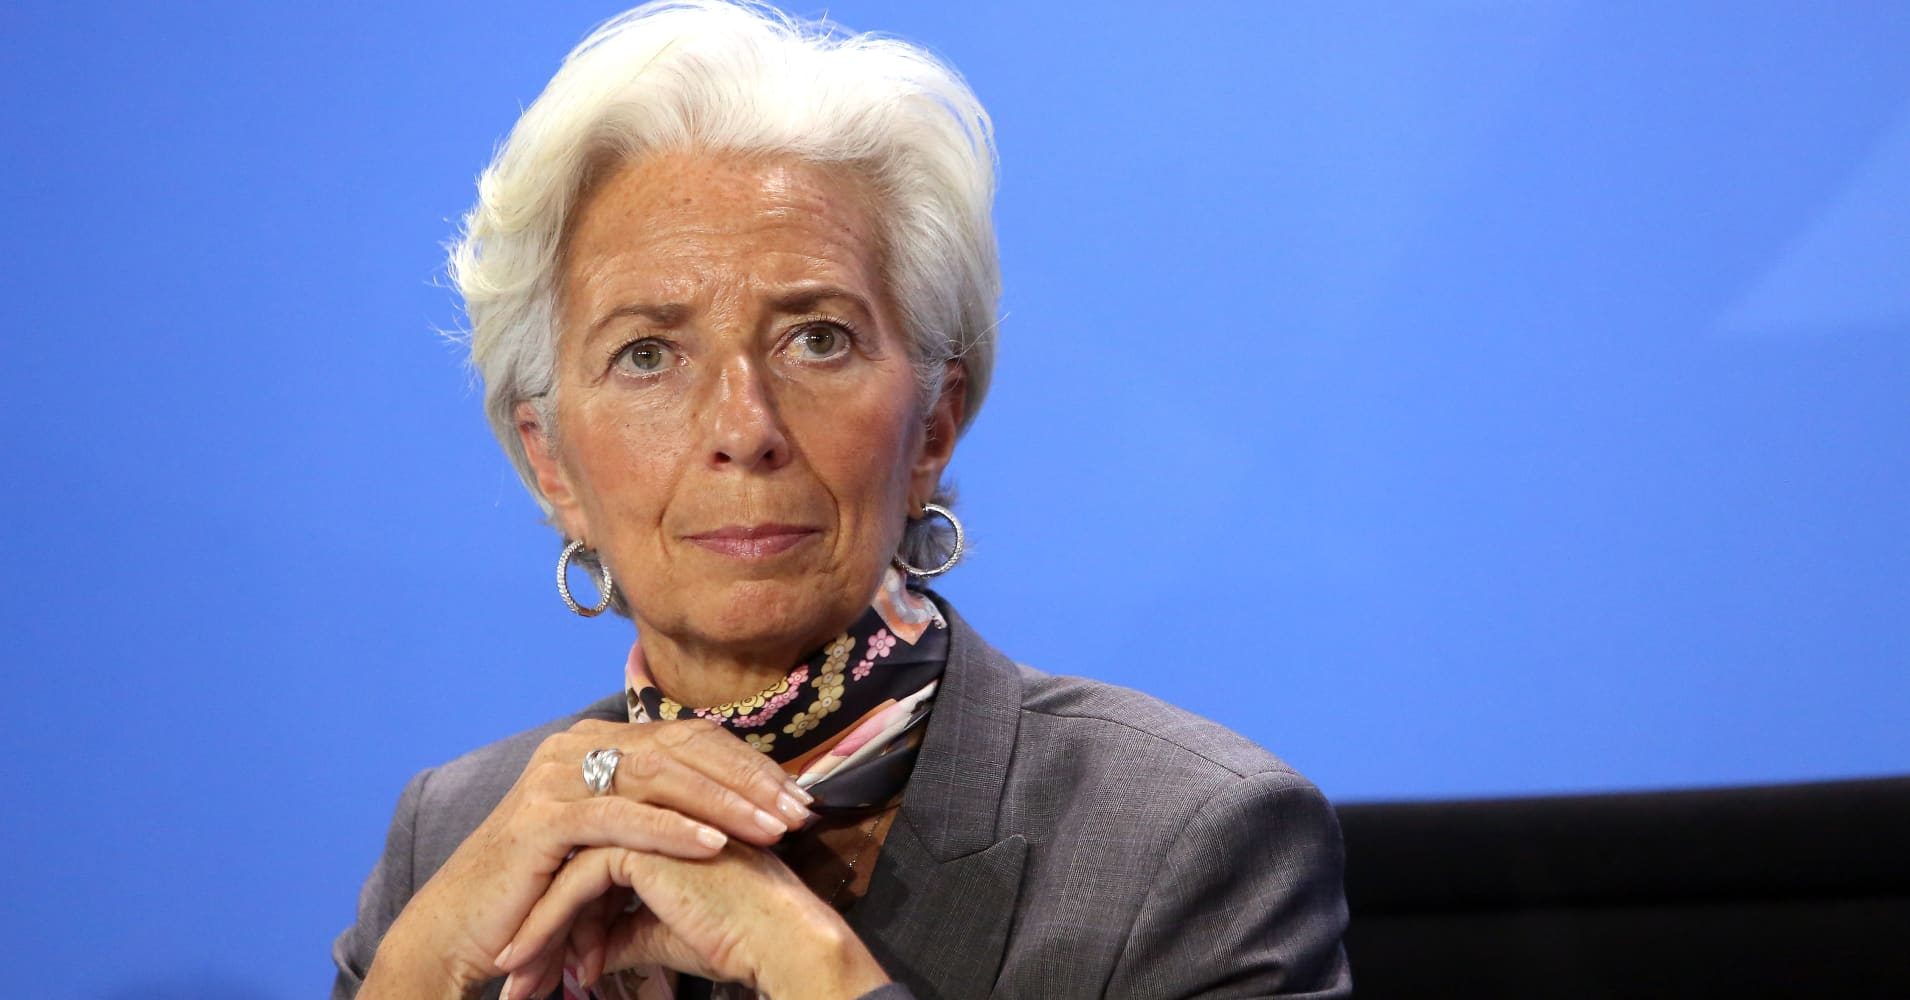 Watch: IMF Managing Director Lagarde holds a news conference at the IMF and World Bank meetings